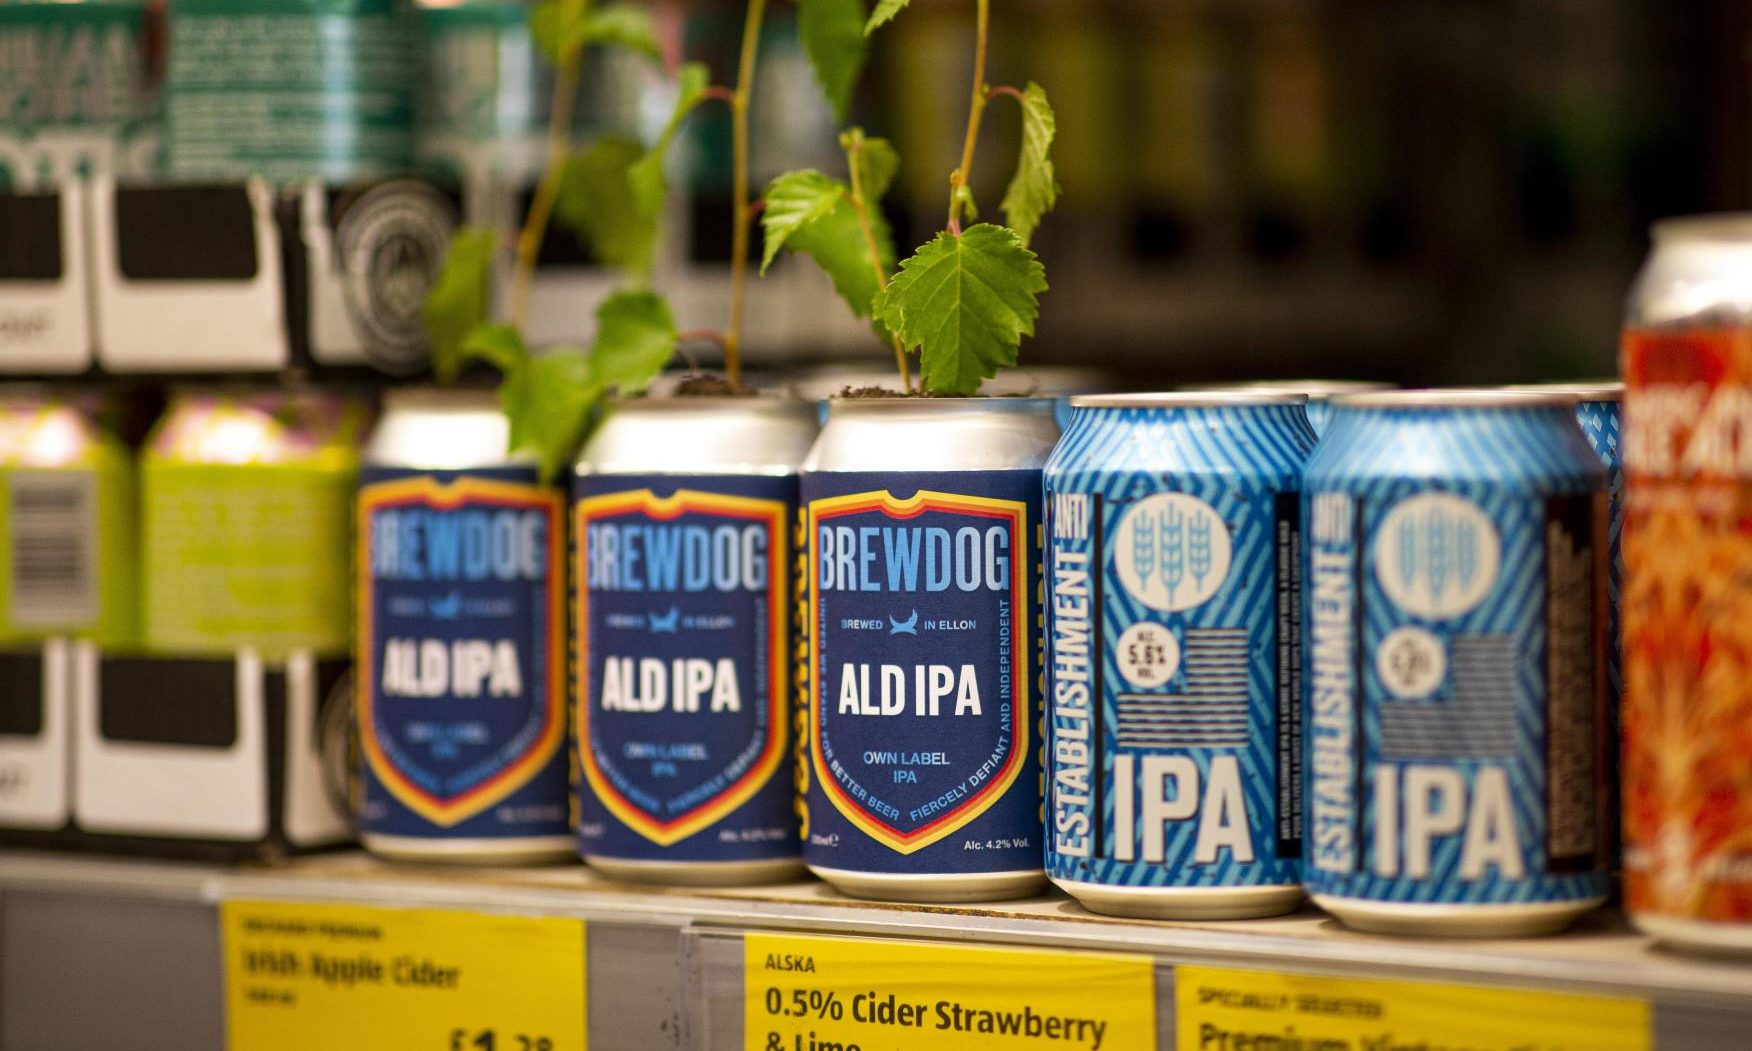 Brewdog And Aldi Call Time On Twitter Spat With New Beer Collaboration photo